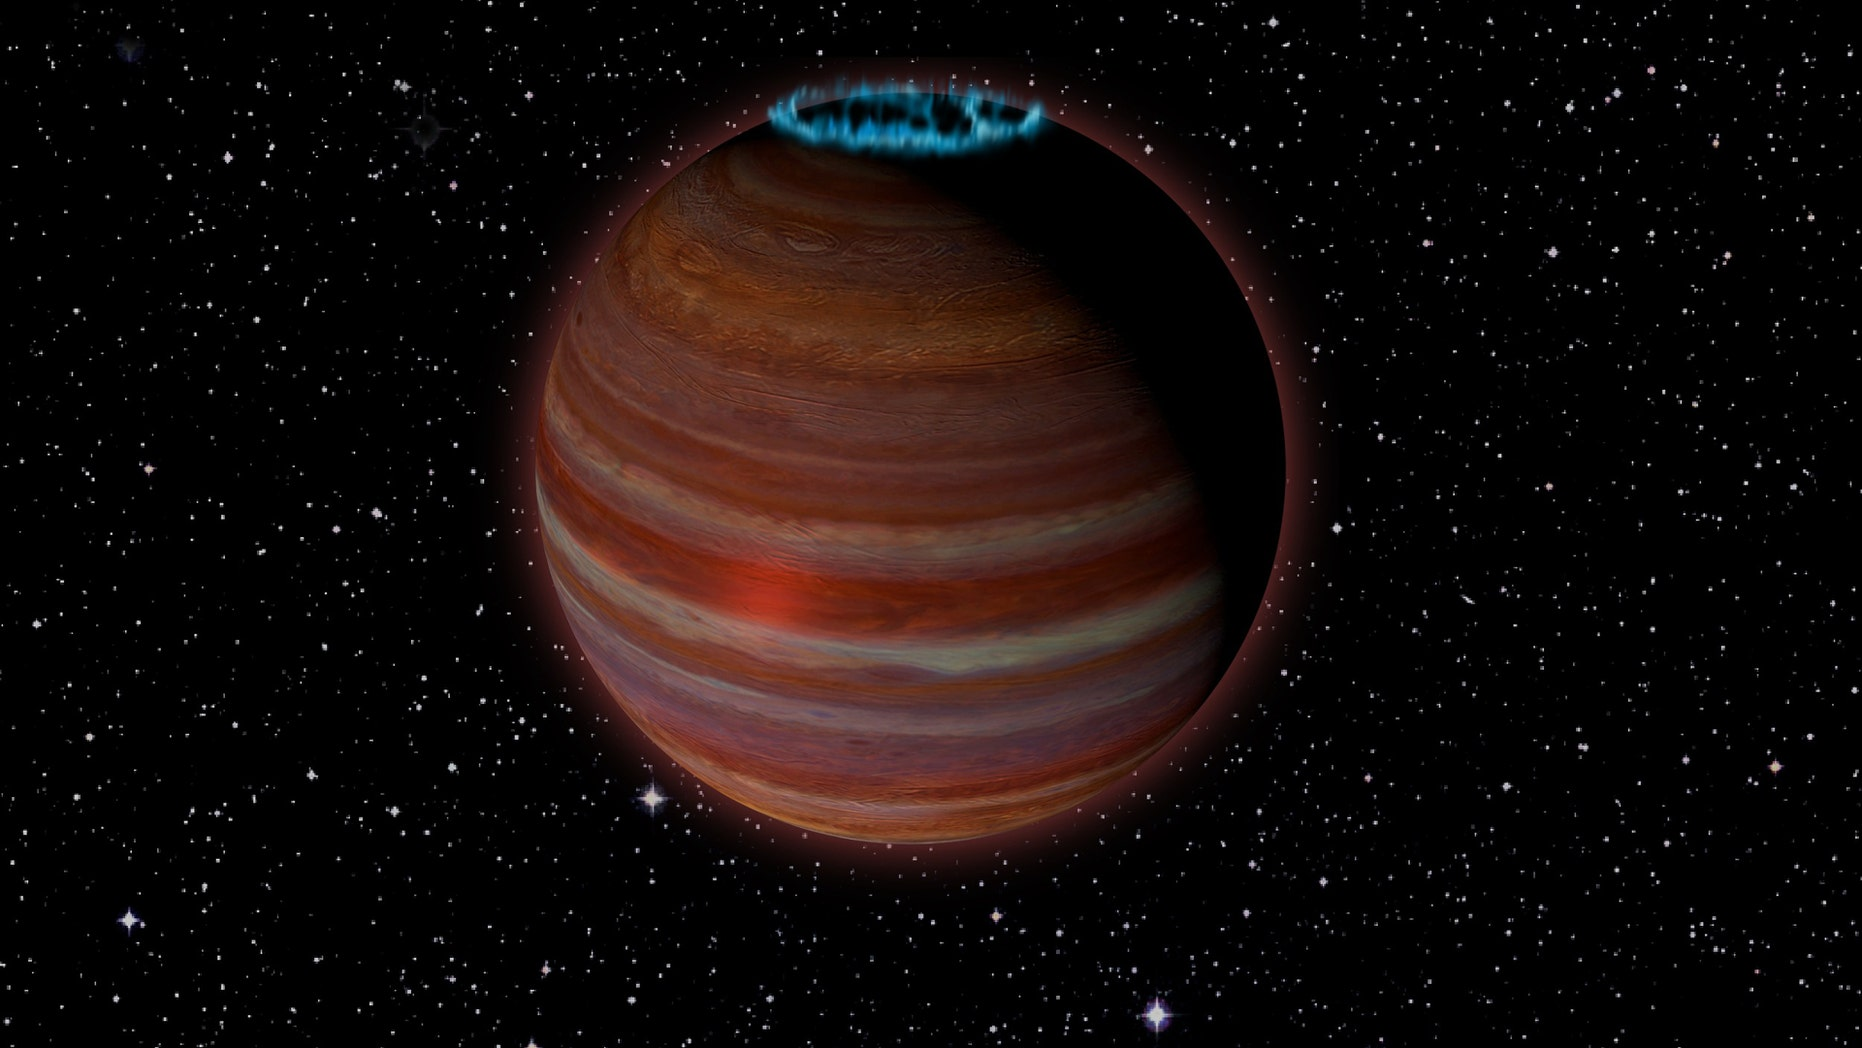 Artist's conception of SIMP J01365663+0933473, an object with 12.7 times the mass of Jupiter, but a magnetic field 200 times more powerful than Jupiter's. This object is 20 light-years from Earth. Credit: Caltech/Chuck Carter; NRAO/AUI/NSF